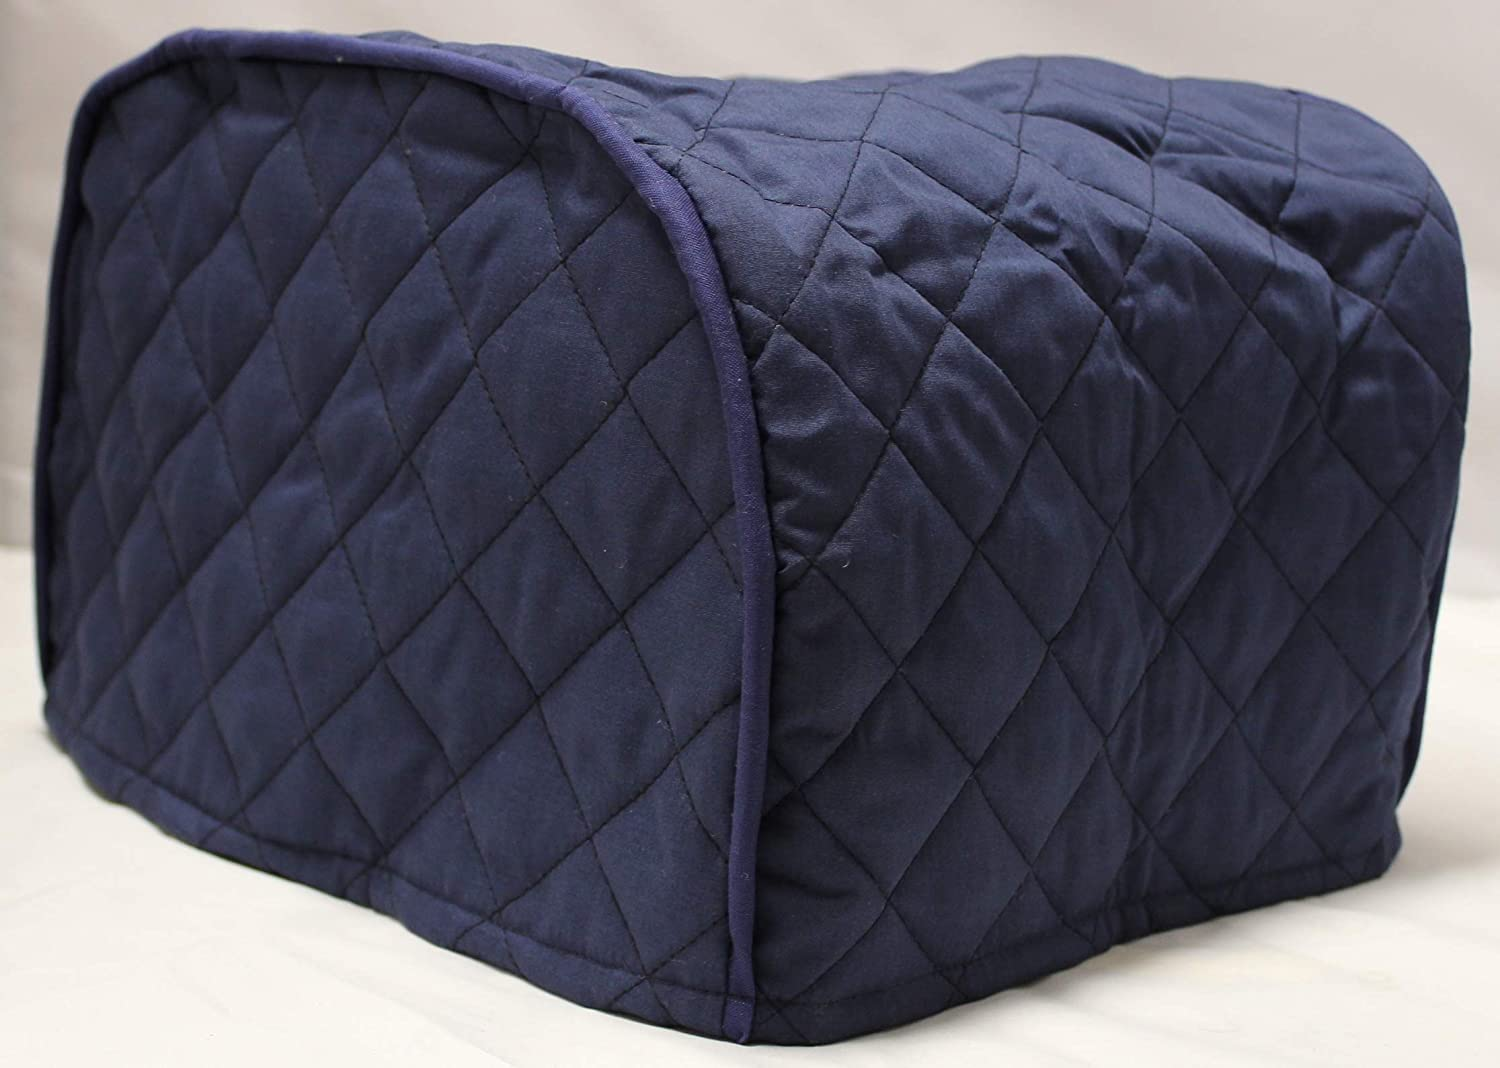 Simple Home Inspirations Solid Quilted Cover Compatible with the Ninja Foodi Grill (Navy)